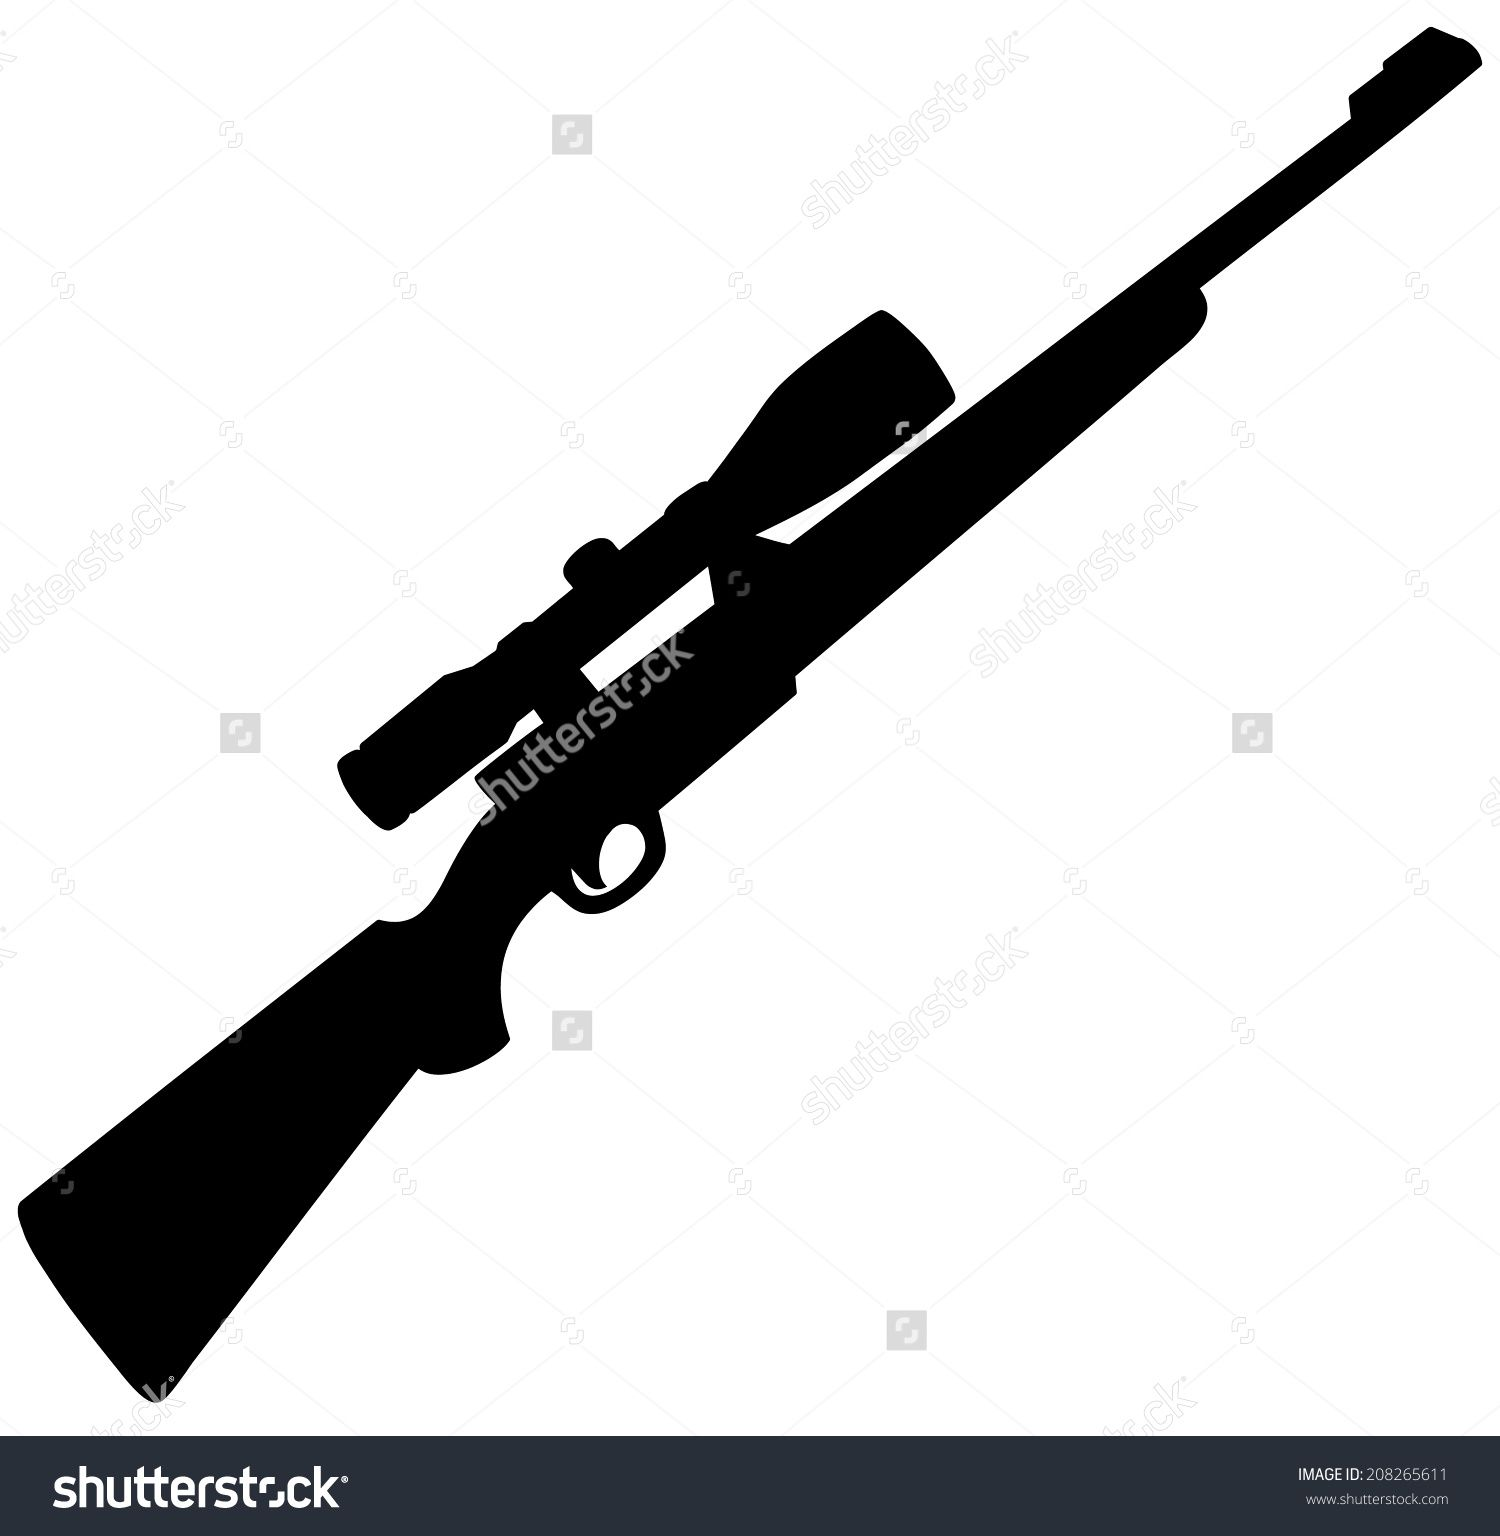 1500x1536 Hunting Rifle Silhouette Stock Vector Illustration 208265611